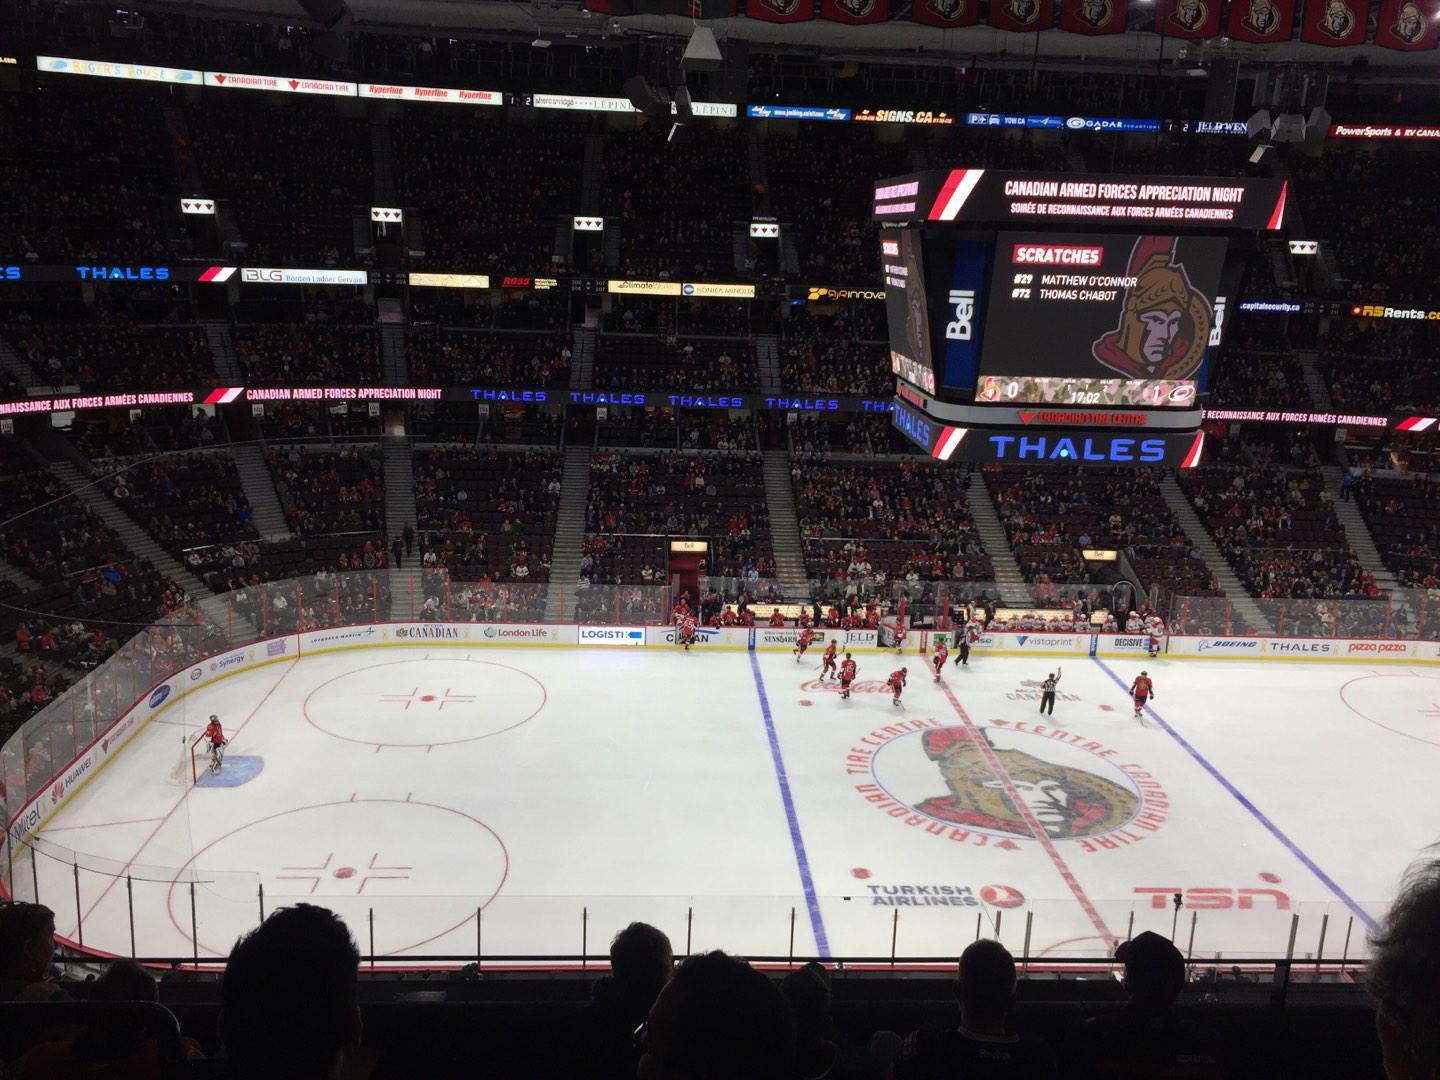 Canadian Tire Centre Section 323 Row E Seat 11